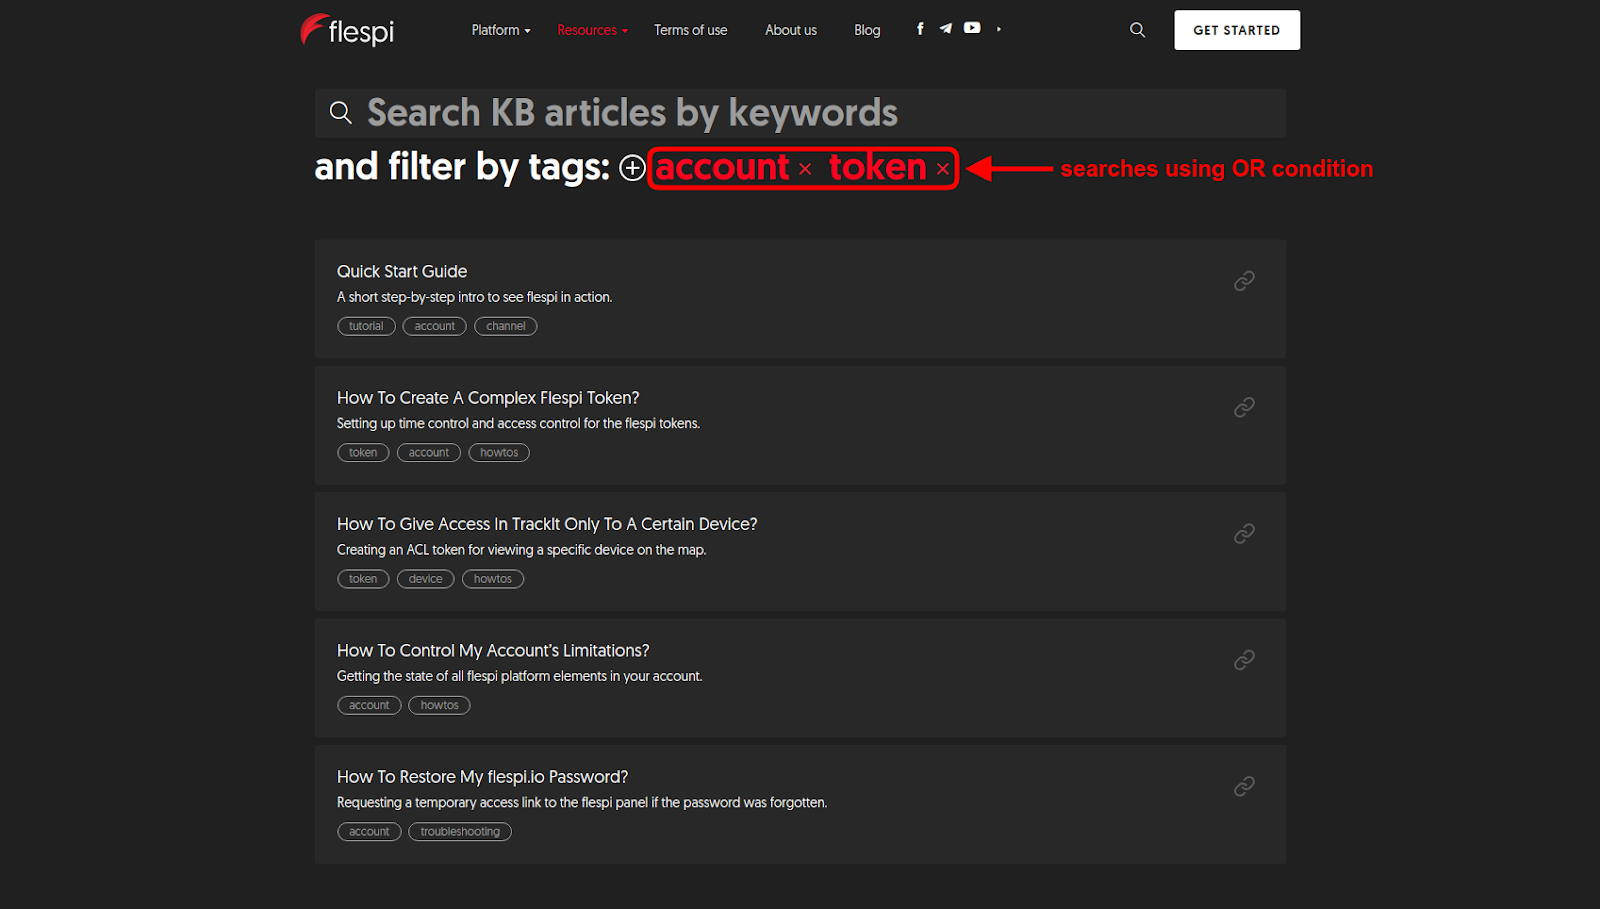 filter knowledge base by several tags